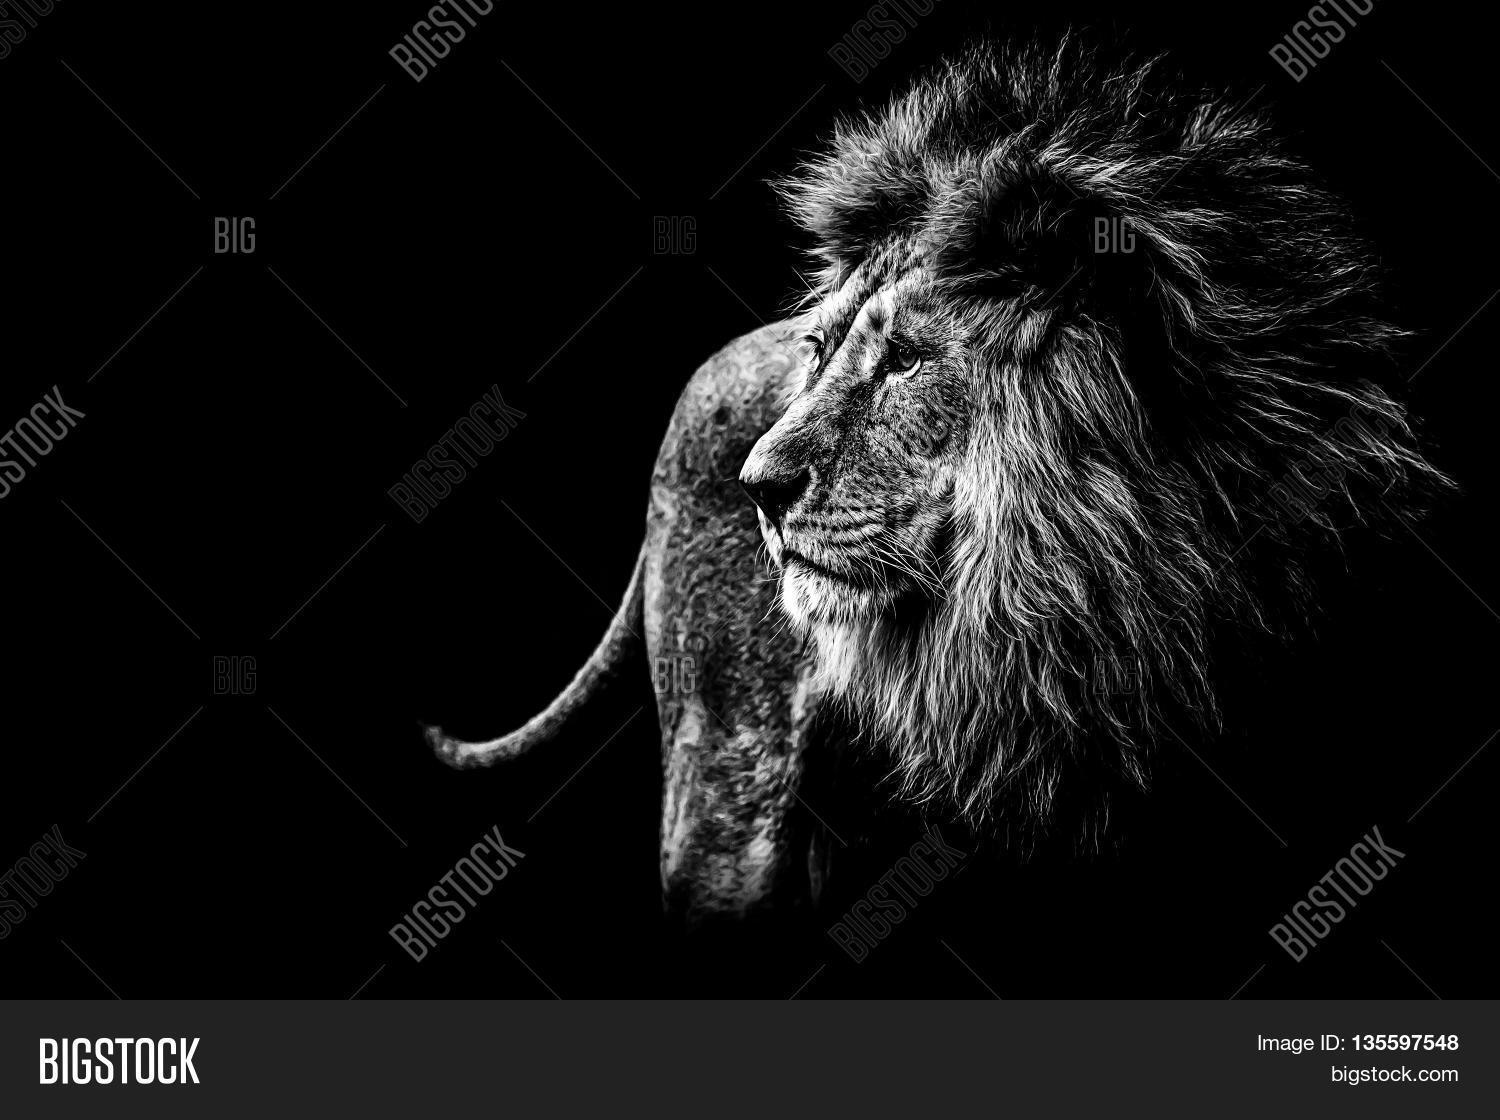 A lion in black and white looks